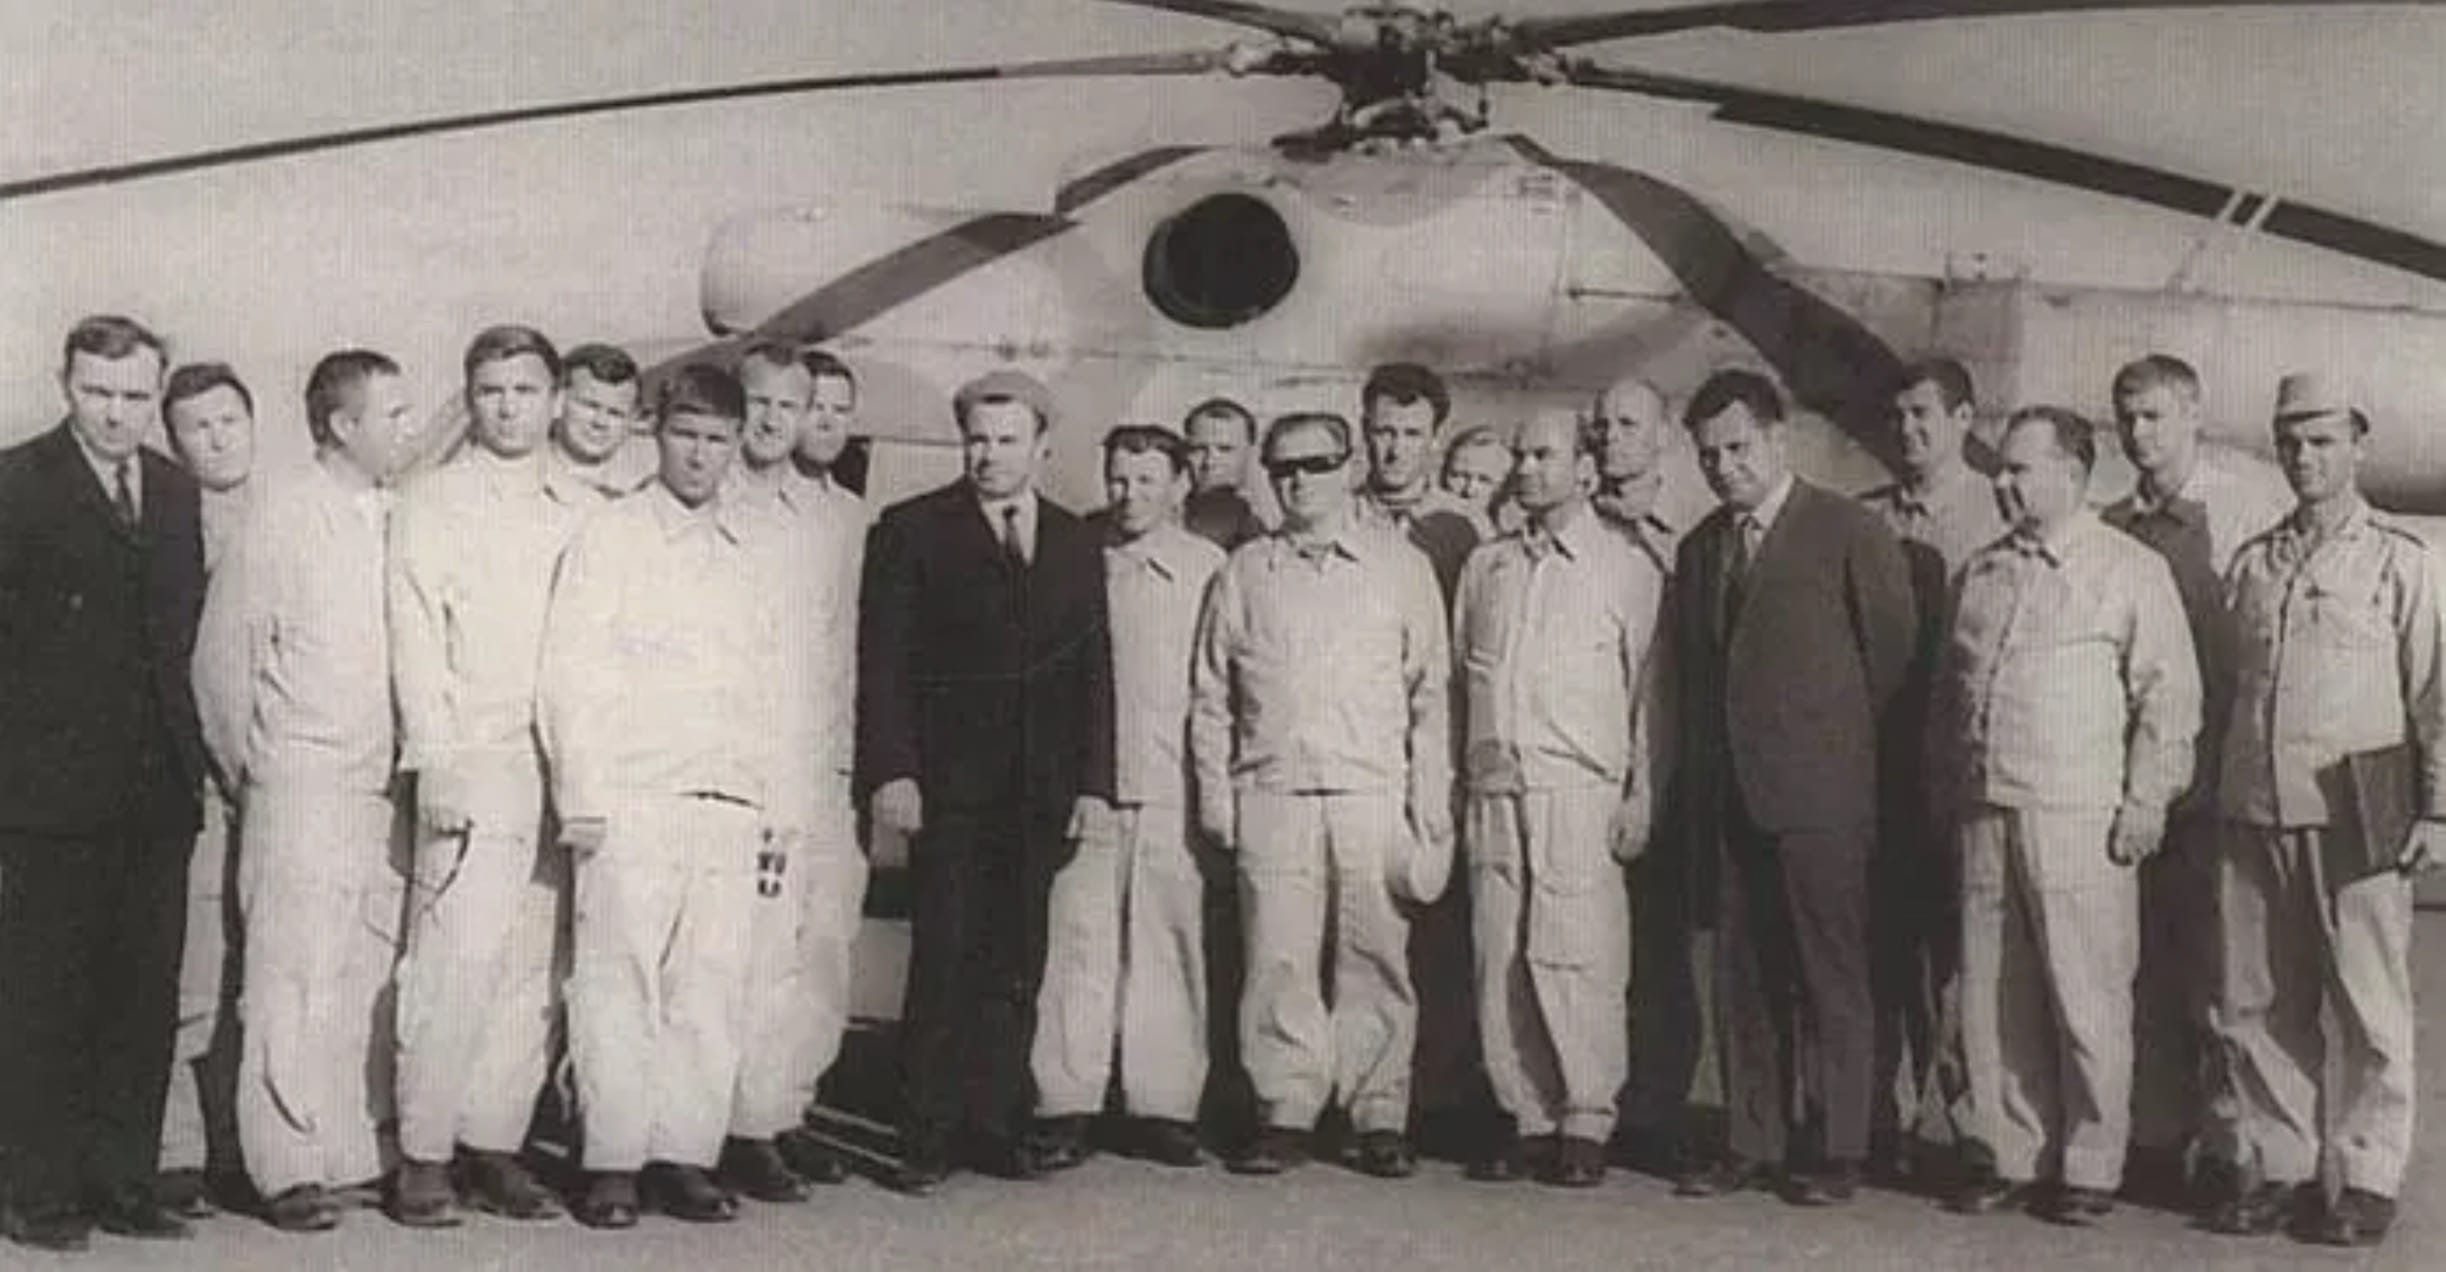 Commander-in-Chief of the USSR Air Force, Chief Air Marshal P.S. Kutakhov with the squadron pilots of the 135th air regiment, February 1972, Egypt.